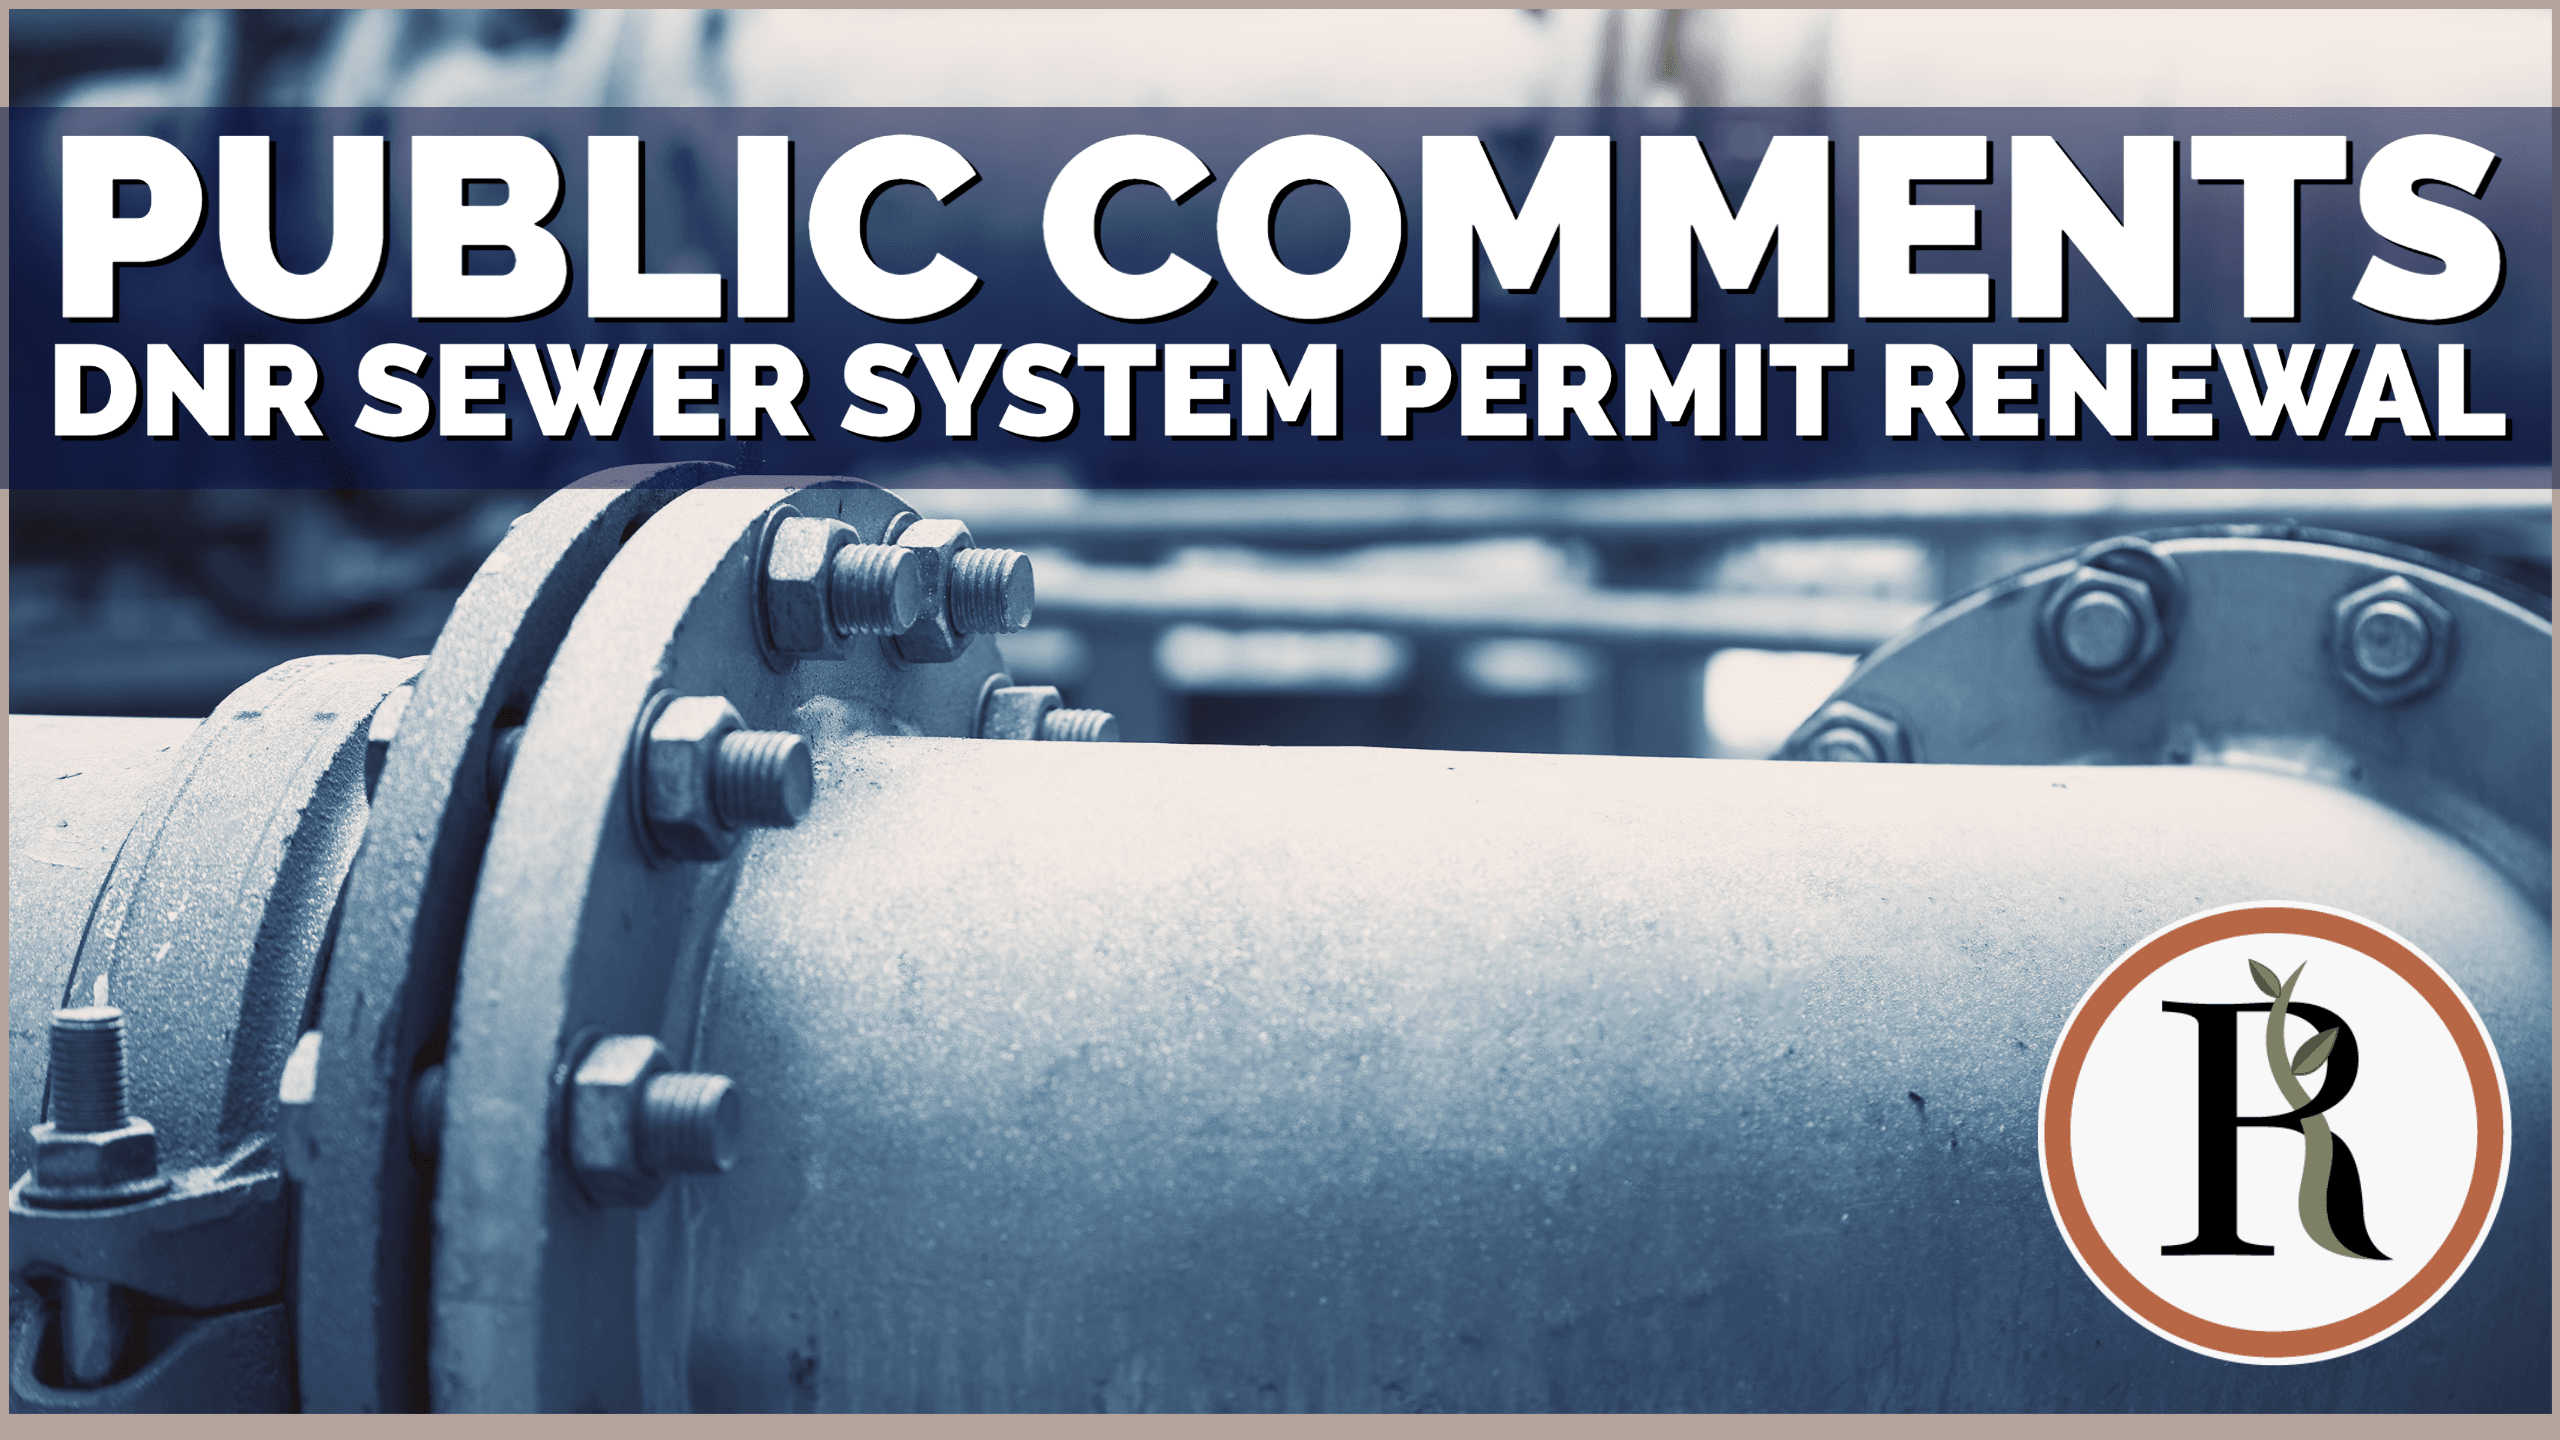 Comment on DNR Sewer System Permit Renewal